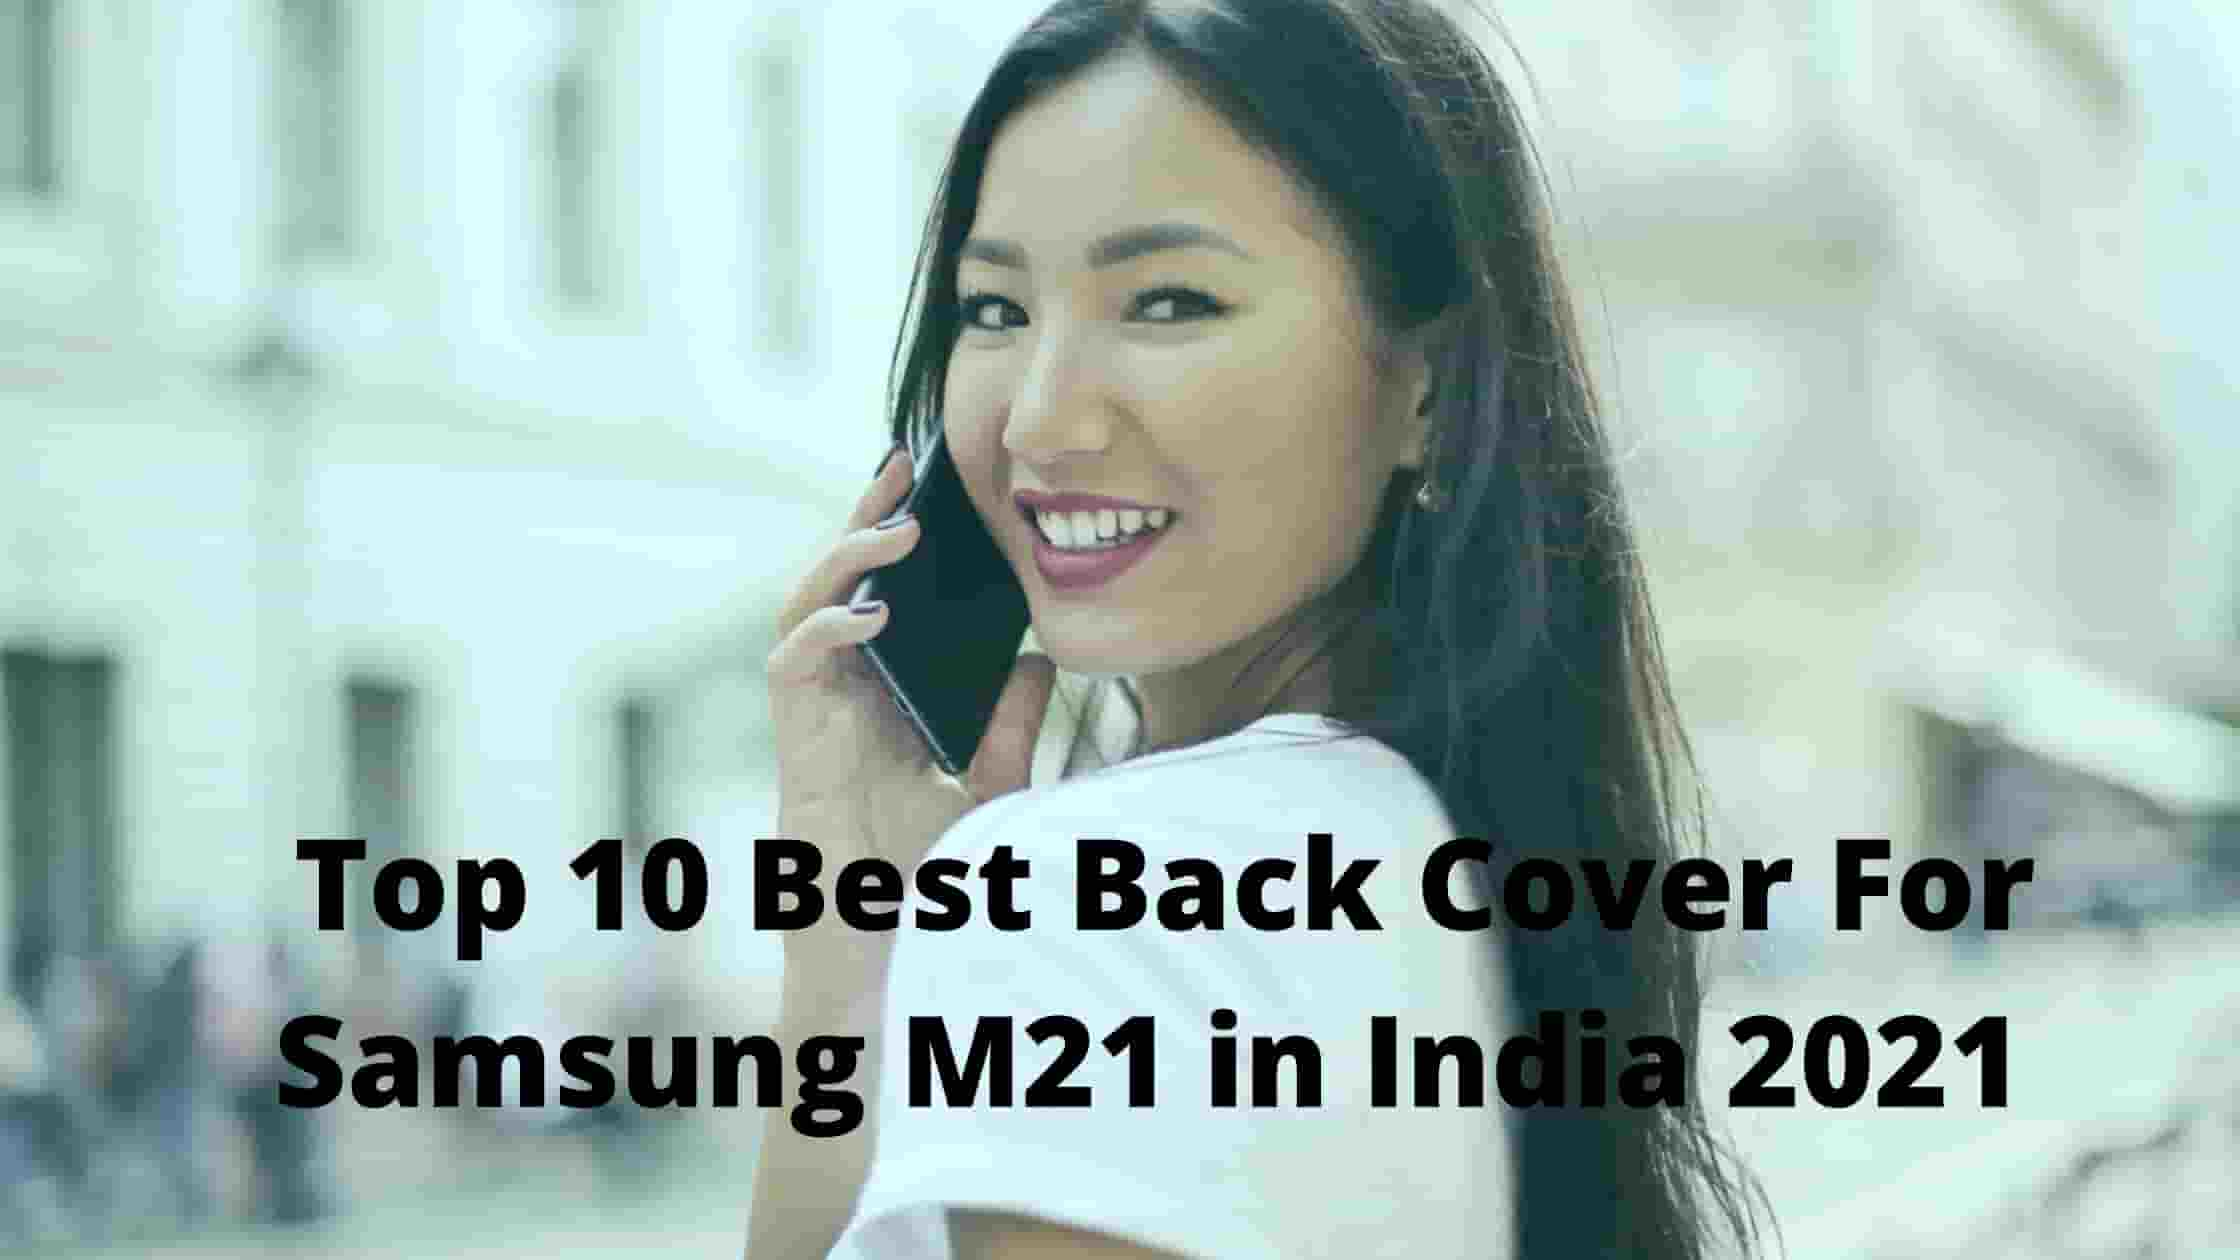 Now Top 10 Best Back Cover For Samsung M21 in India 2021 [Bengali]